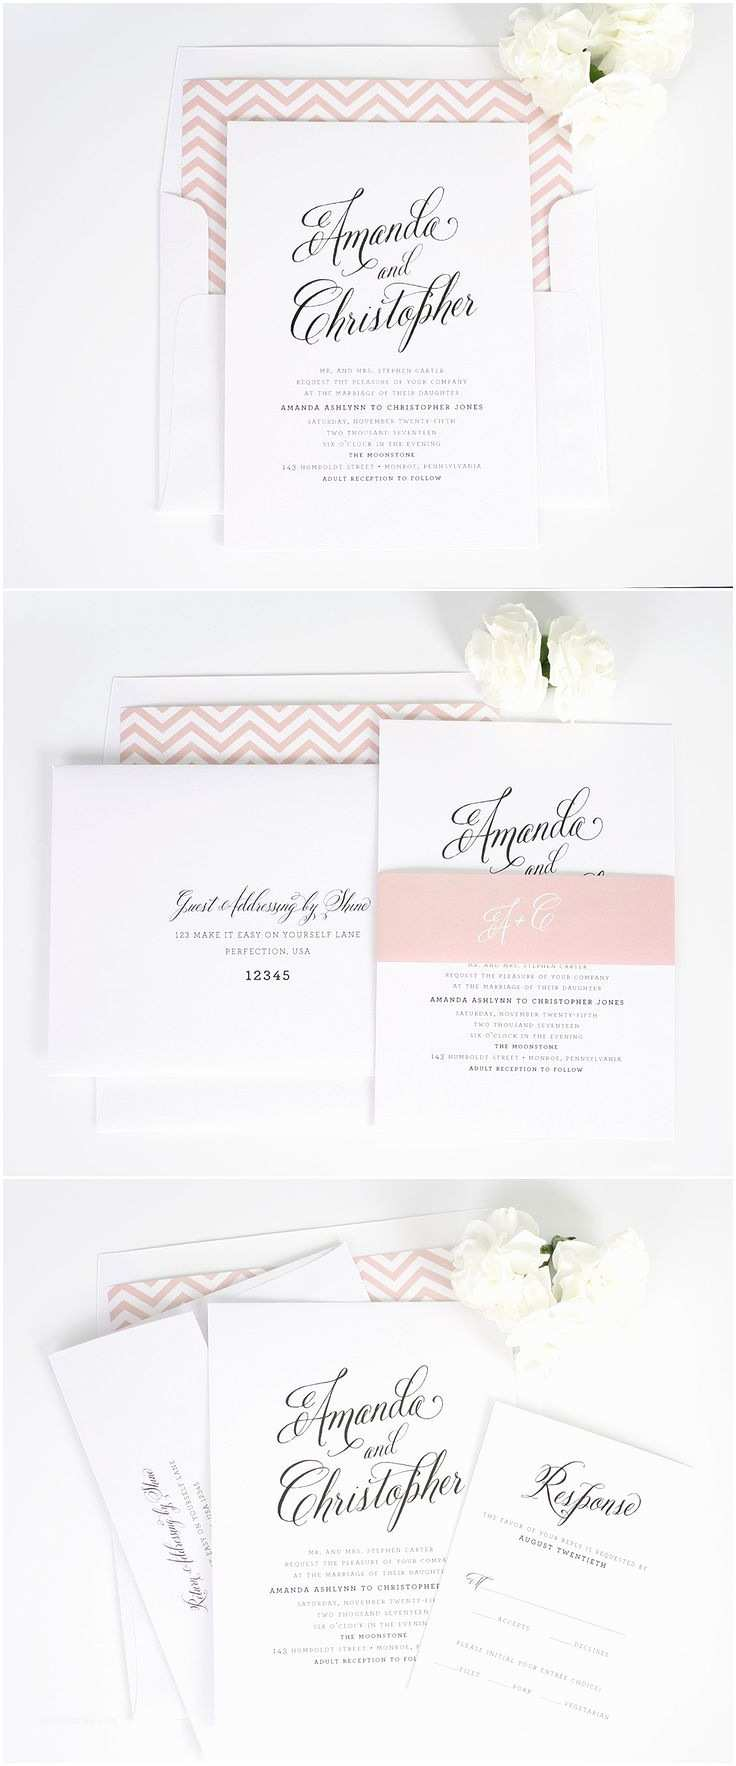 Shine Wedding Invitations 1000 Ideas About Modern Wedding Invitations On Pinterest